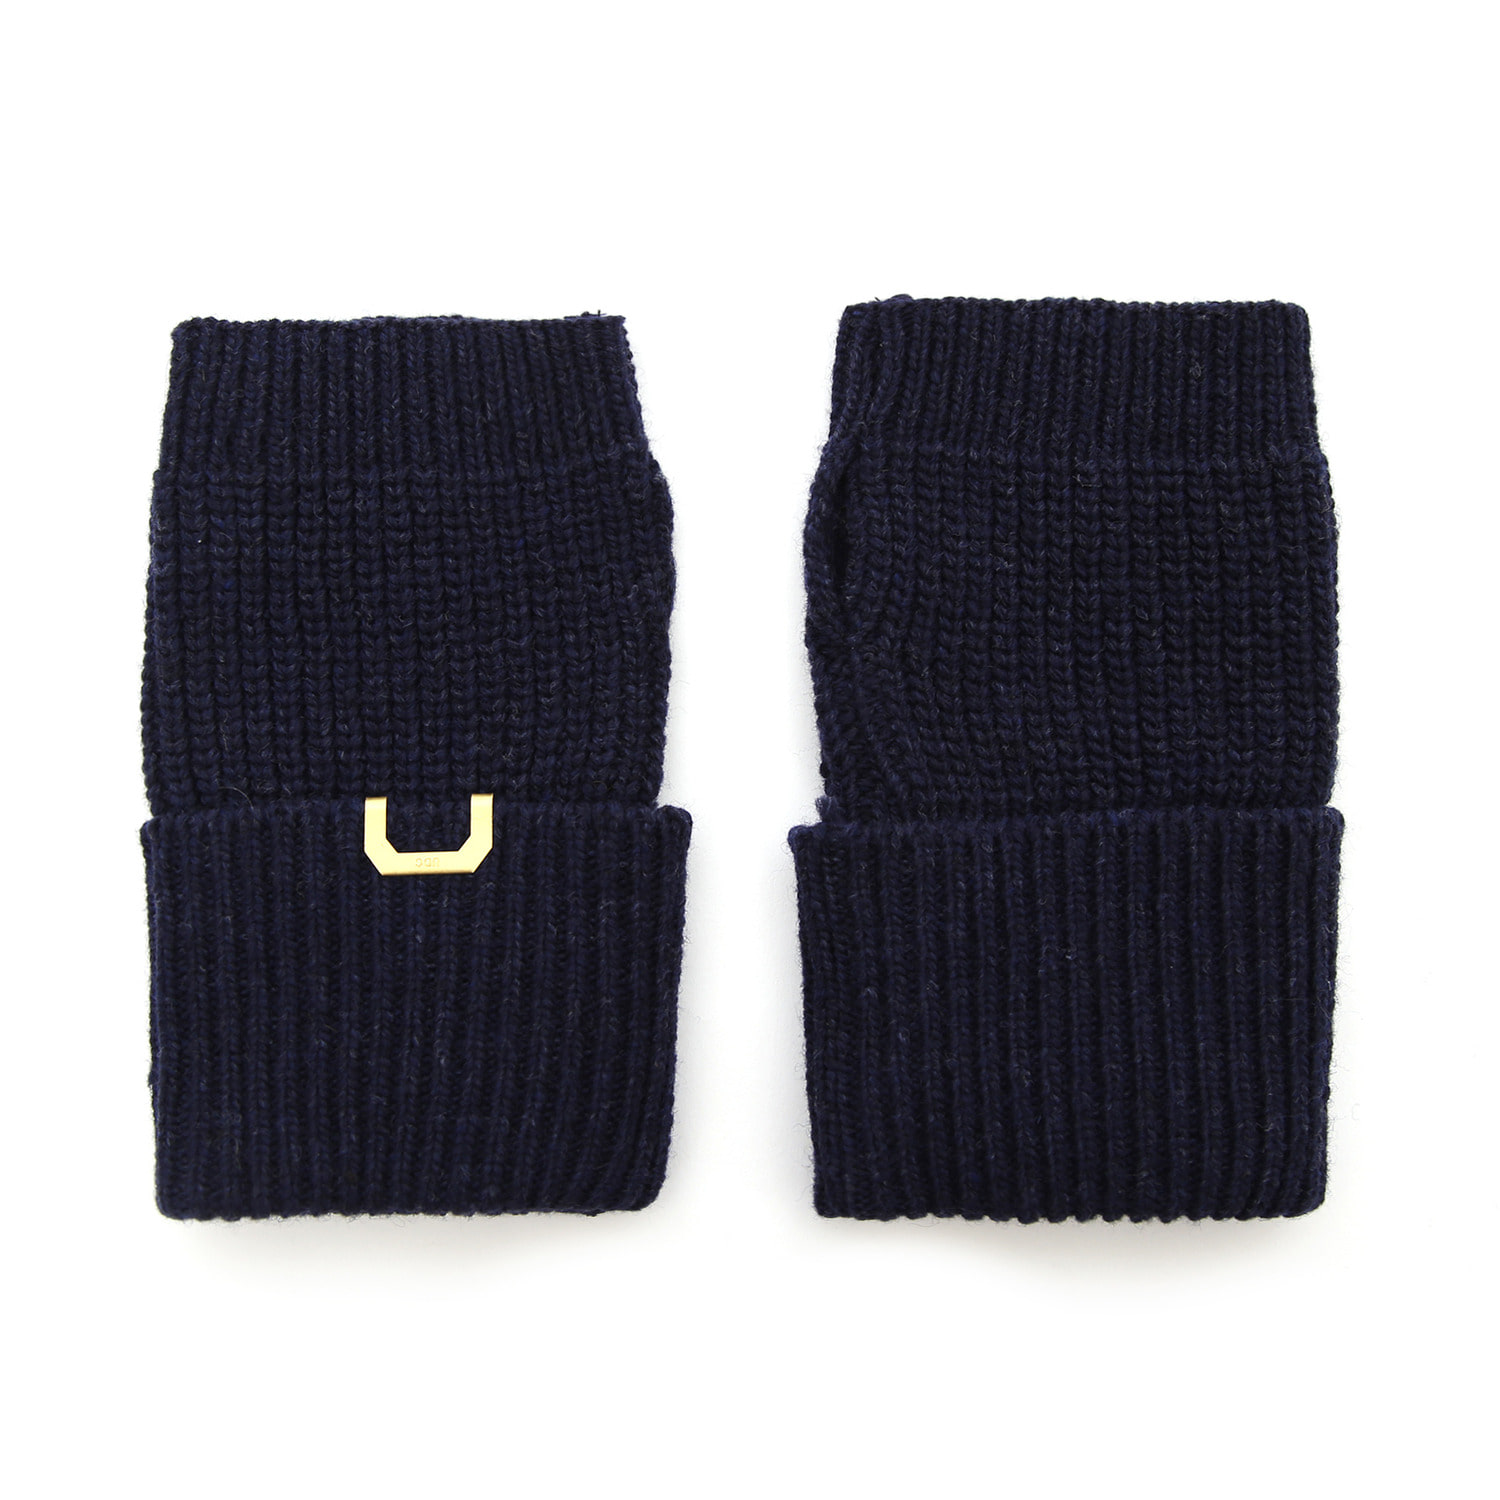 SLEEVE WARMER / LAMBS WOOL / HTR NAVY